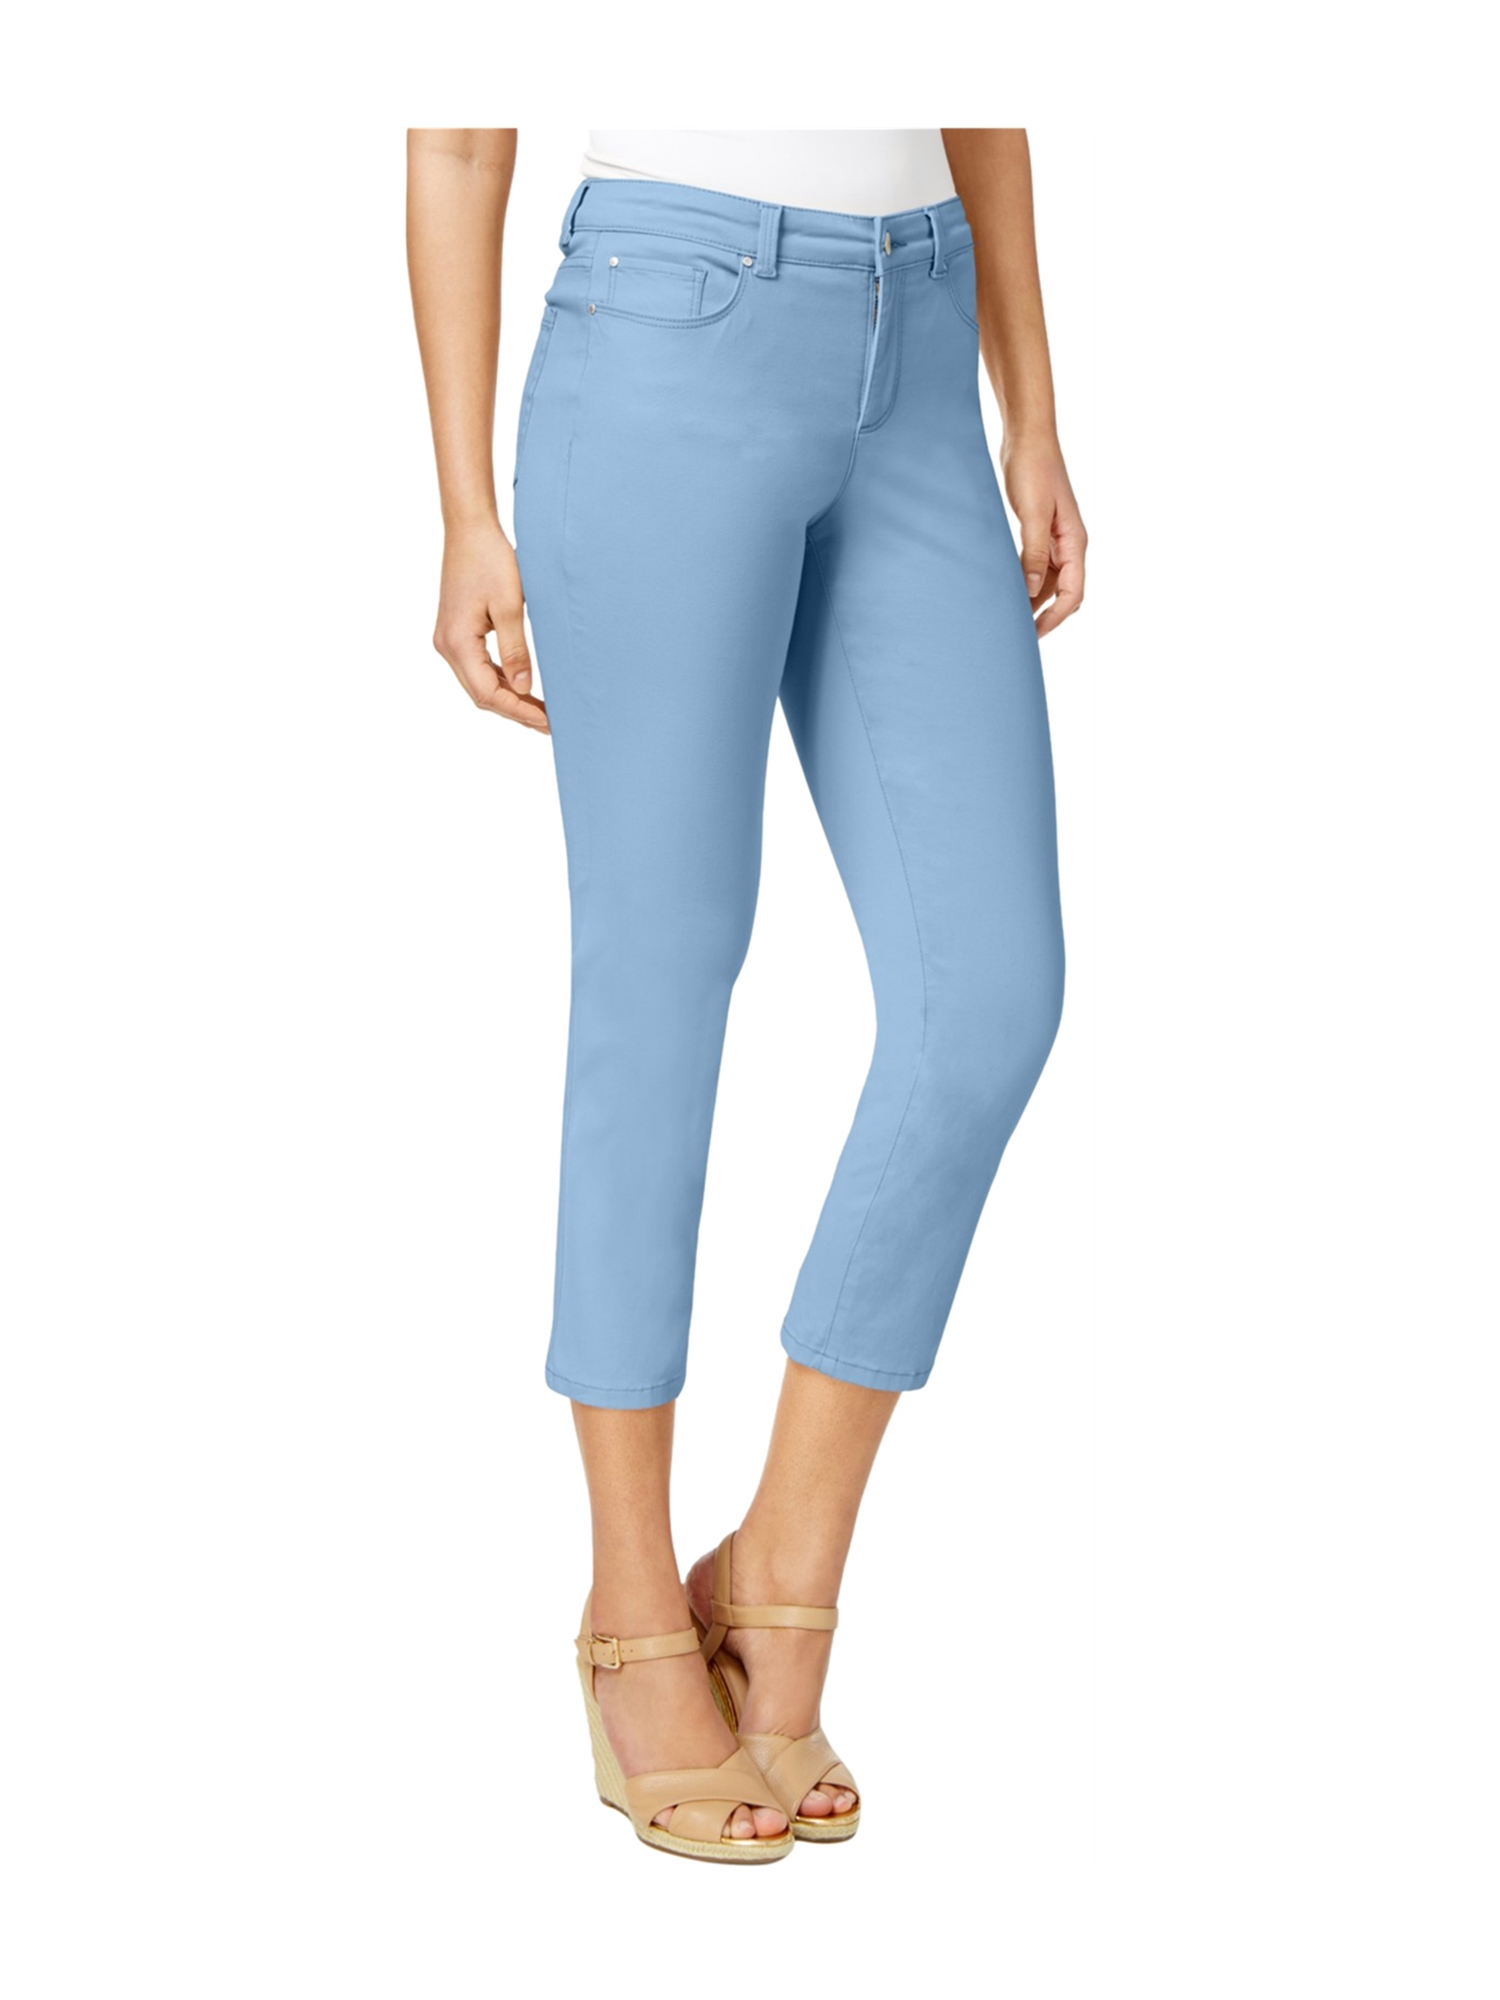 Charter Club Womens Textured Capri Casual Cropped Pants